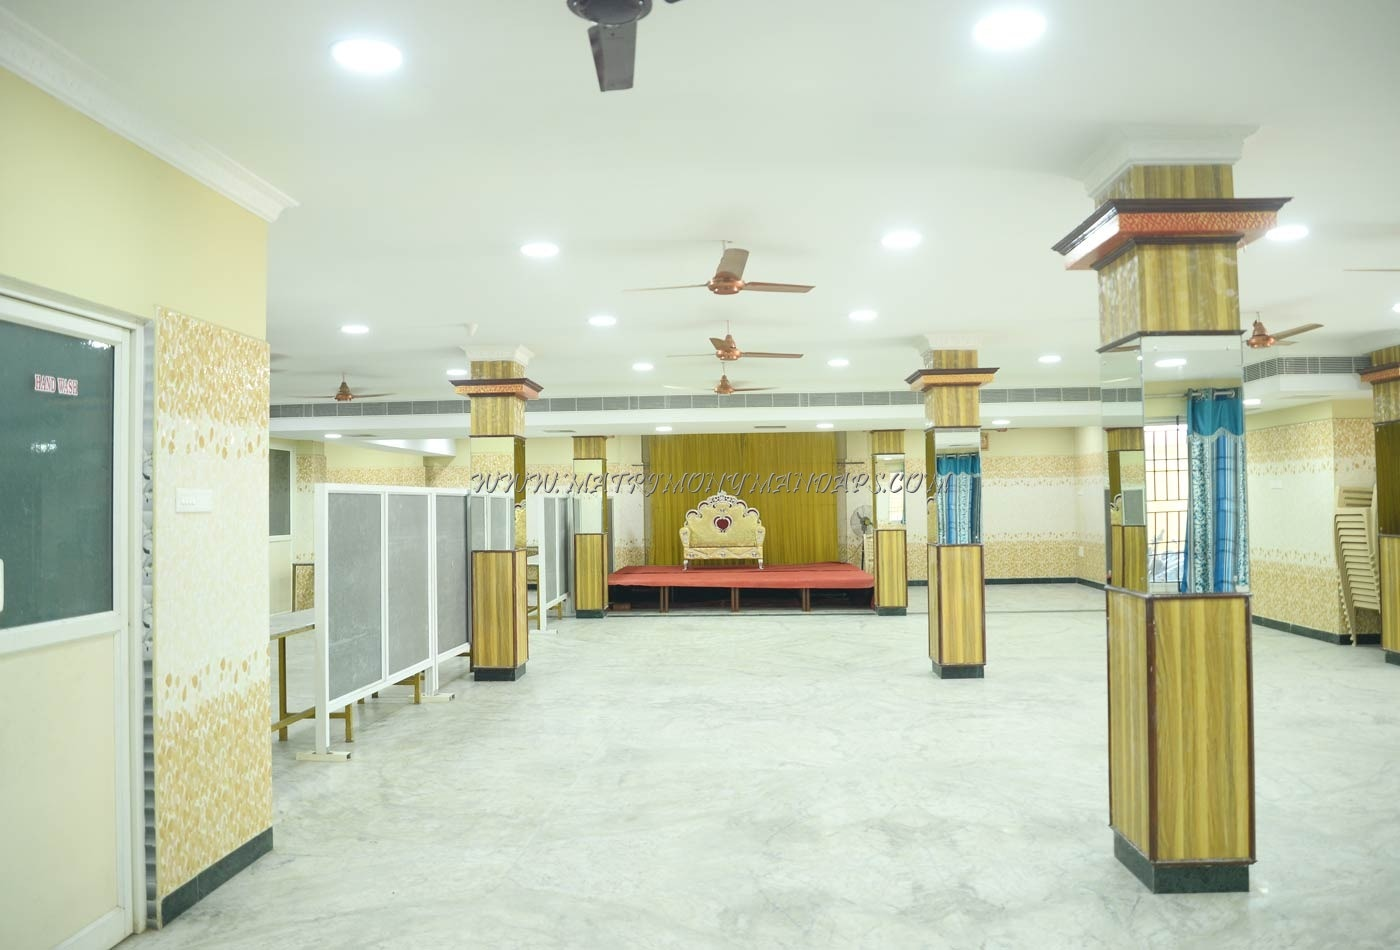 Find the availability of the Sri Kumaran Mini Mahal (A/C) in Medavakkam, Chennai and avail special offers